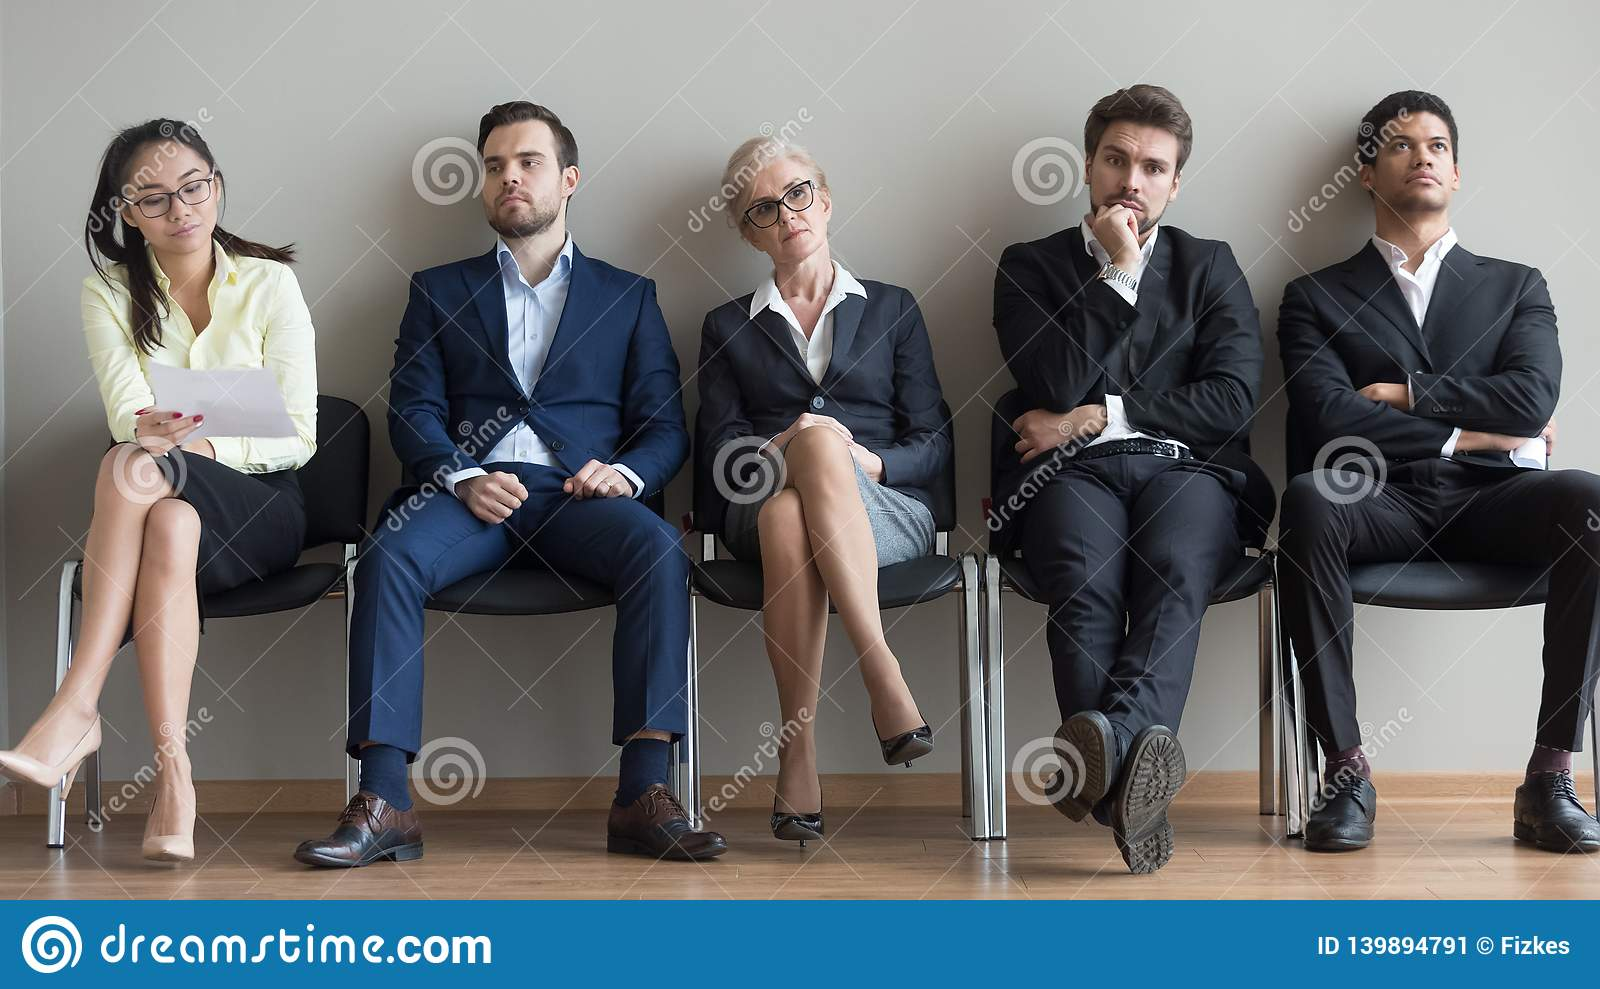 Diverse applicants waiting for their turn preparing for job interview